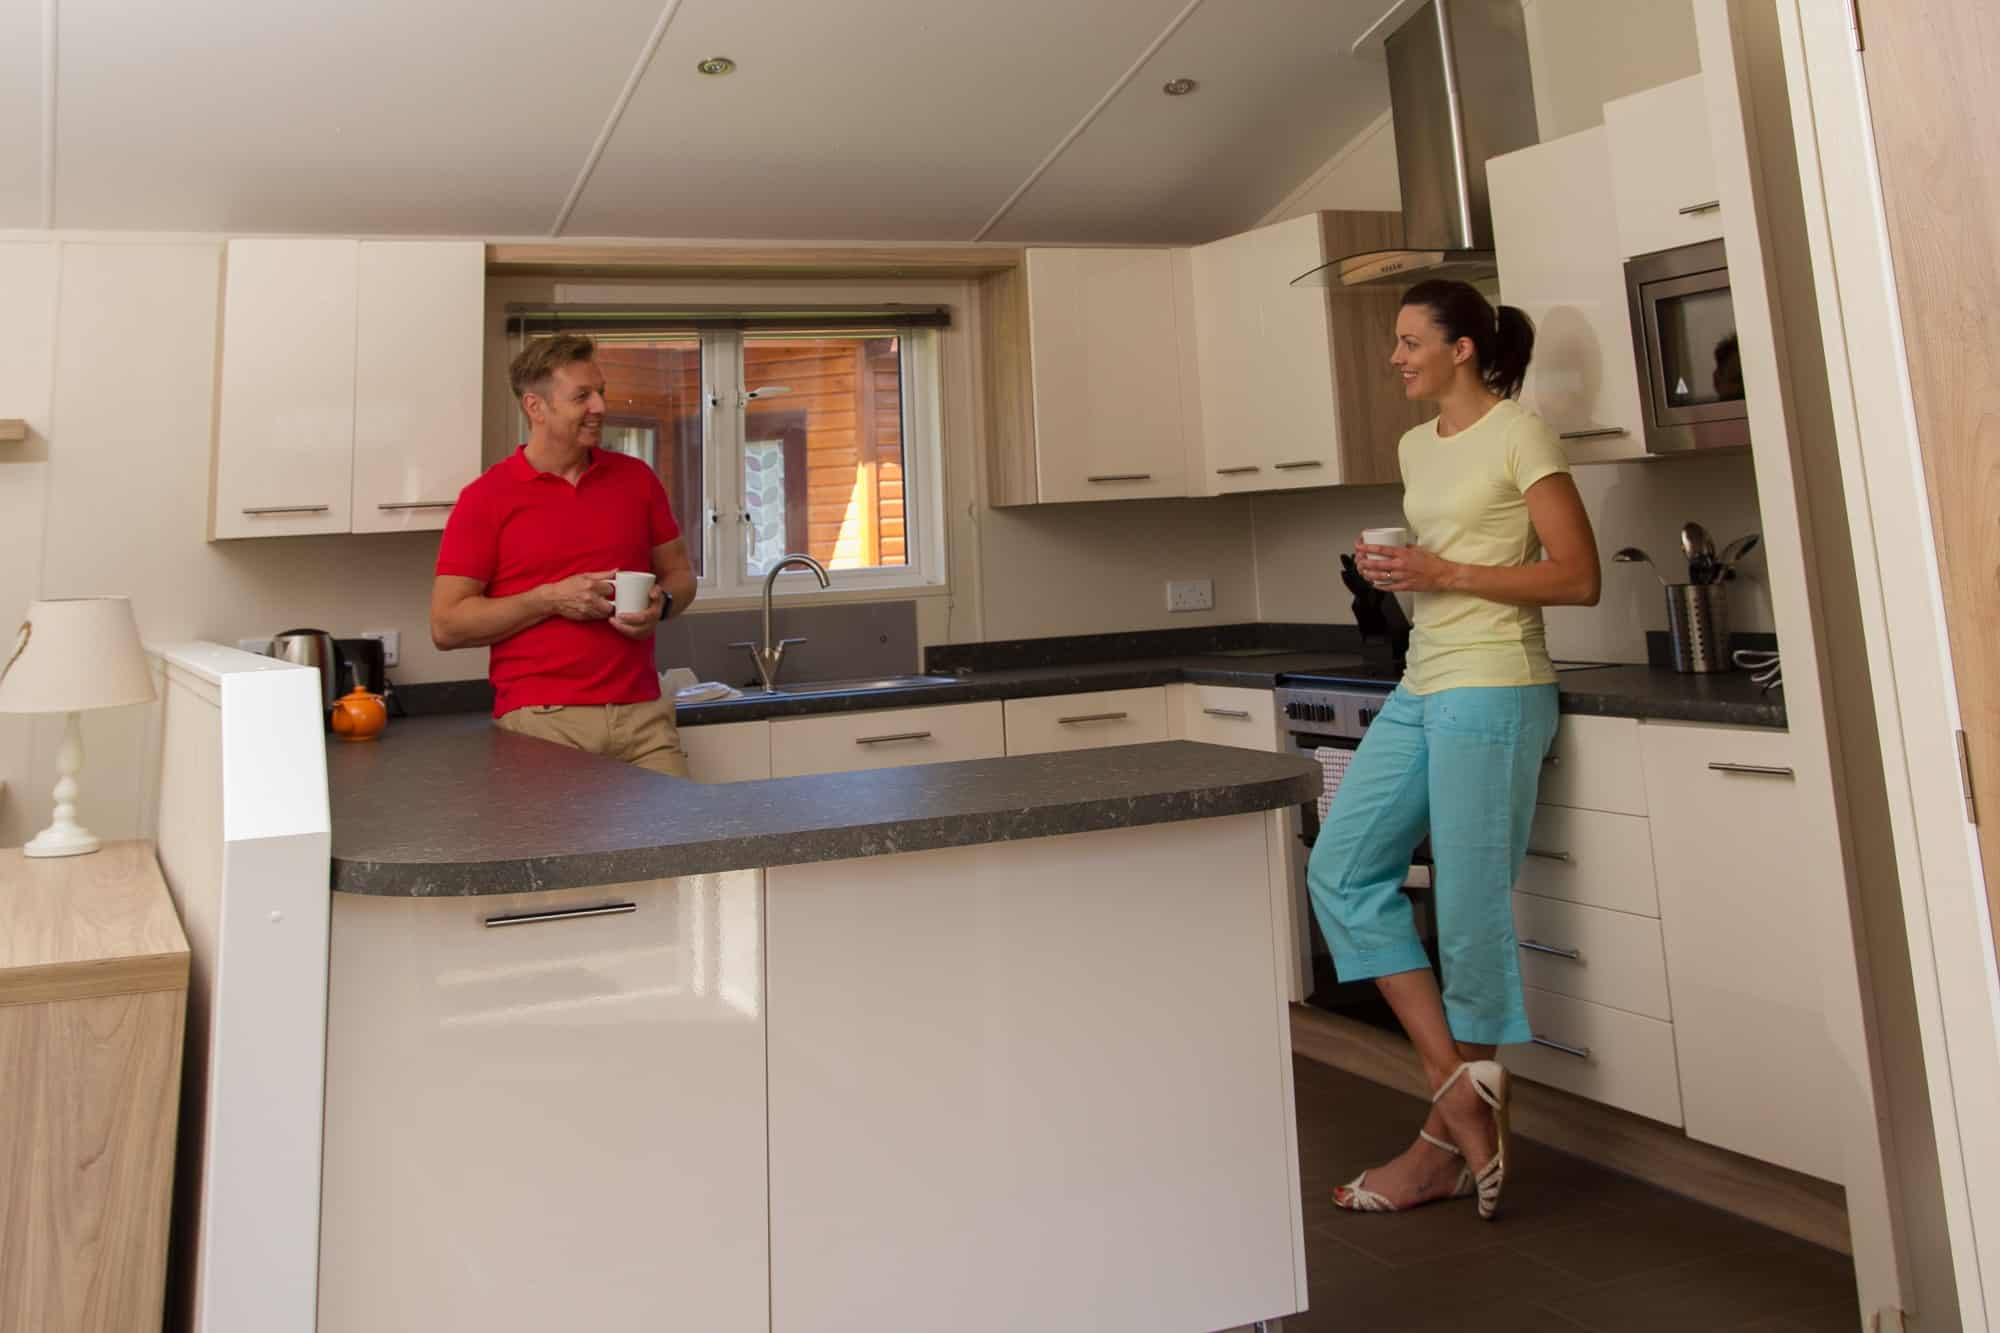 Experience a whole new lifestyle with holiday home ownership at Thurston Manor